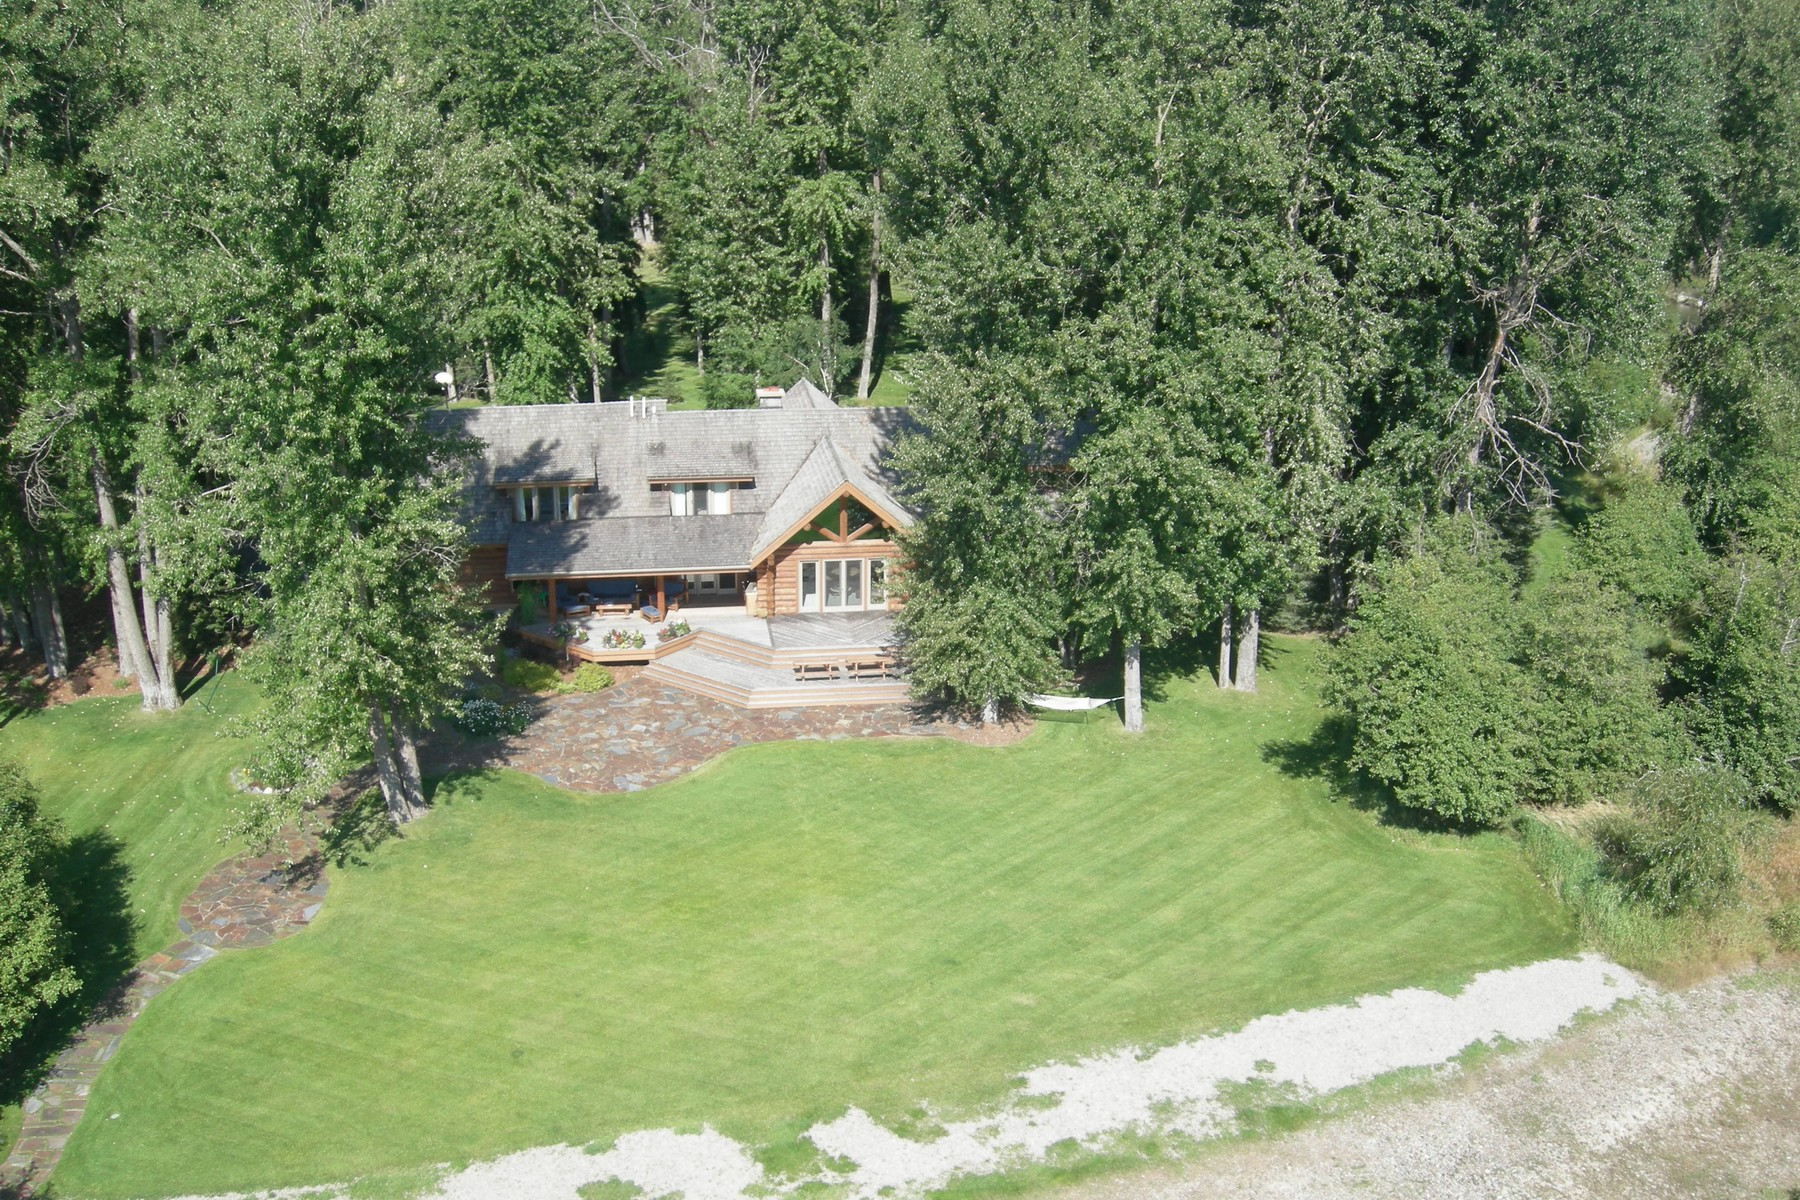 Single Family Home for Sale at Swift Eagle 405 Delrey Rd Whitefish, Montana 59937 United States